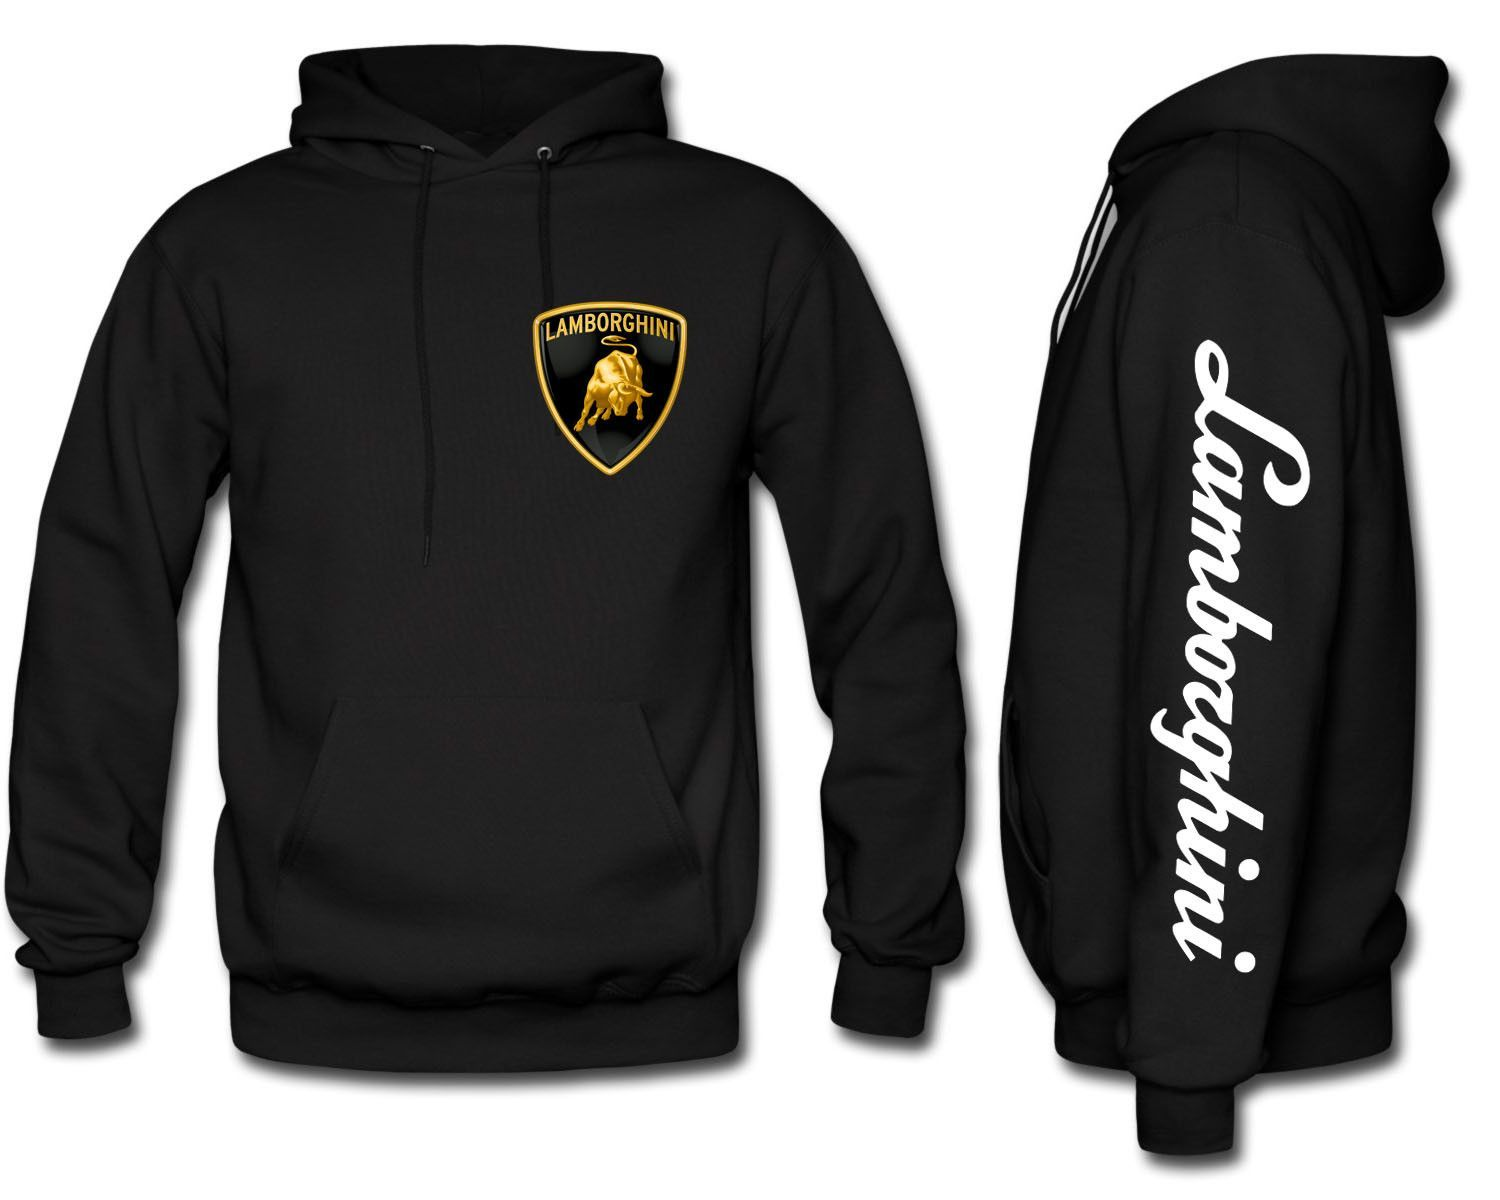 Lamborghini Kids Zip-up Hoodie White Unisex Clothing